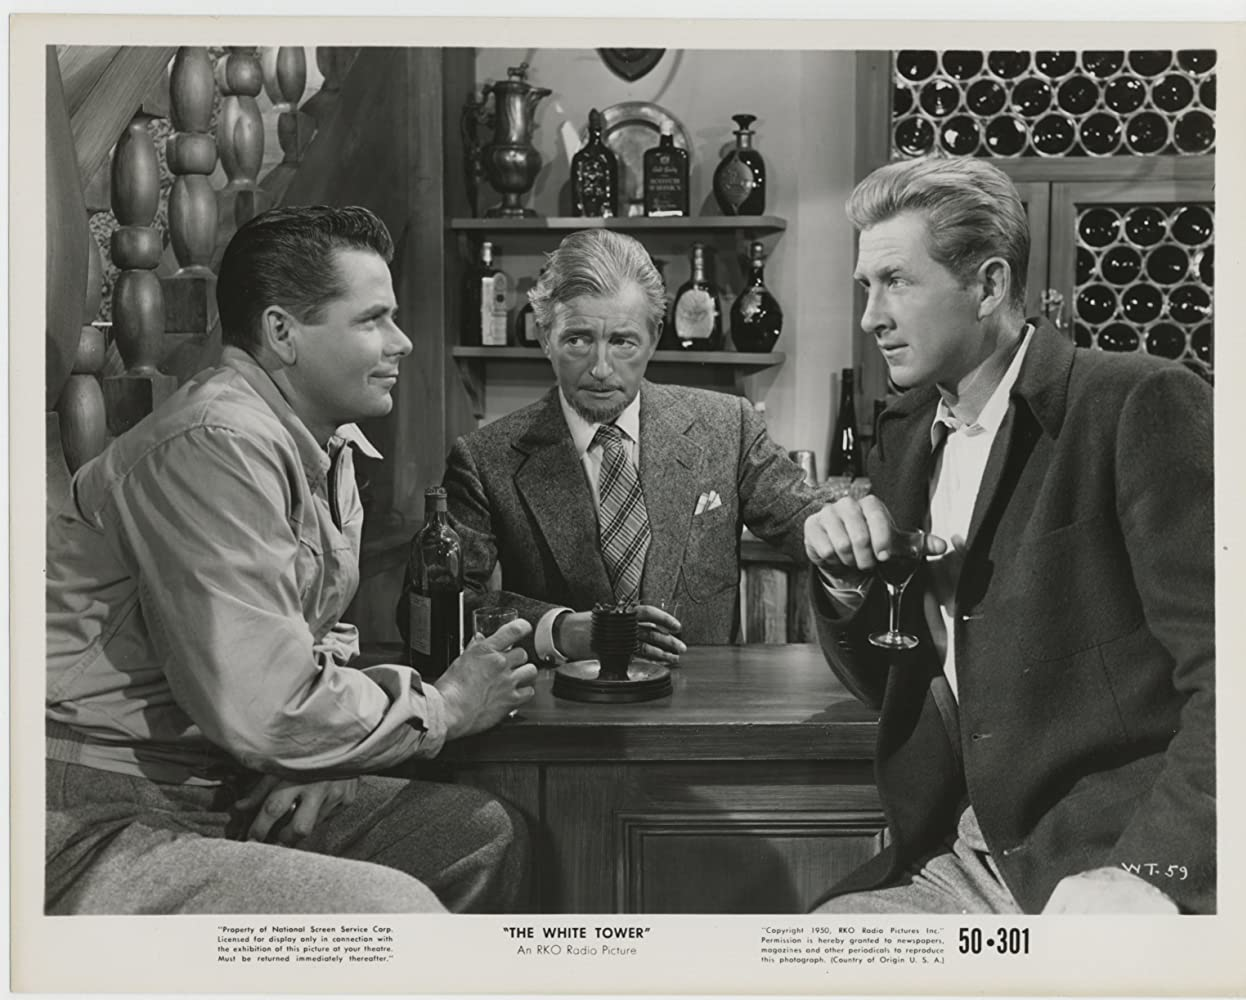 Lloyd Bridges, Glenn Ford, and Claude Rains in The White Tower (1950)